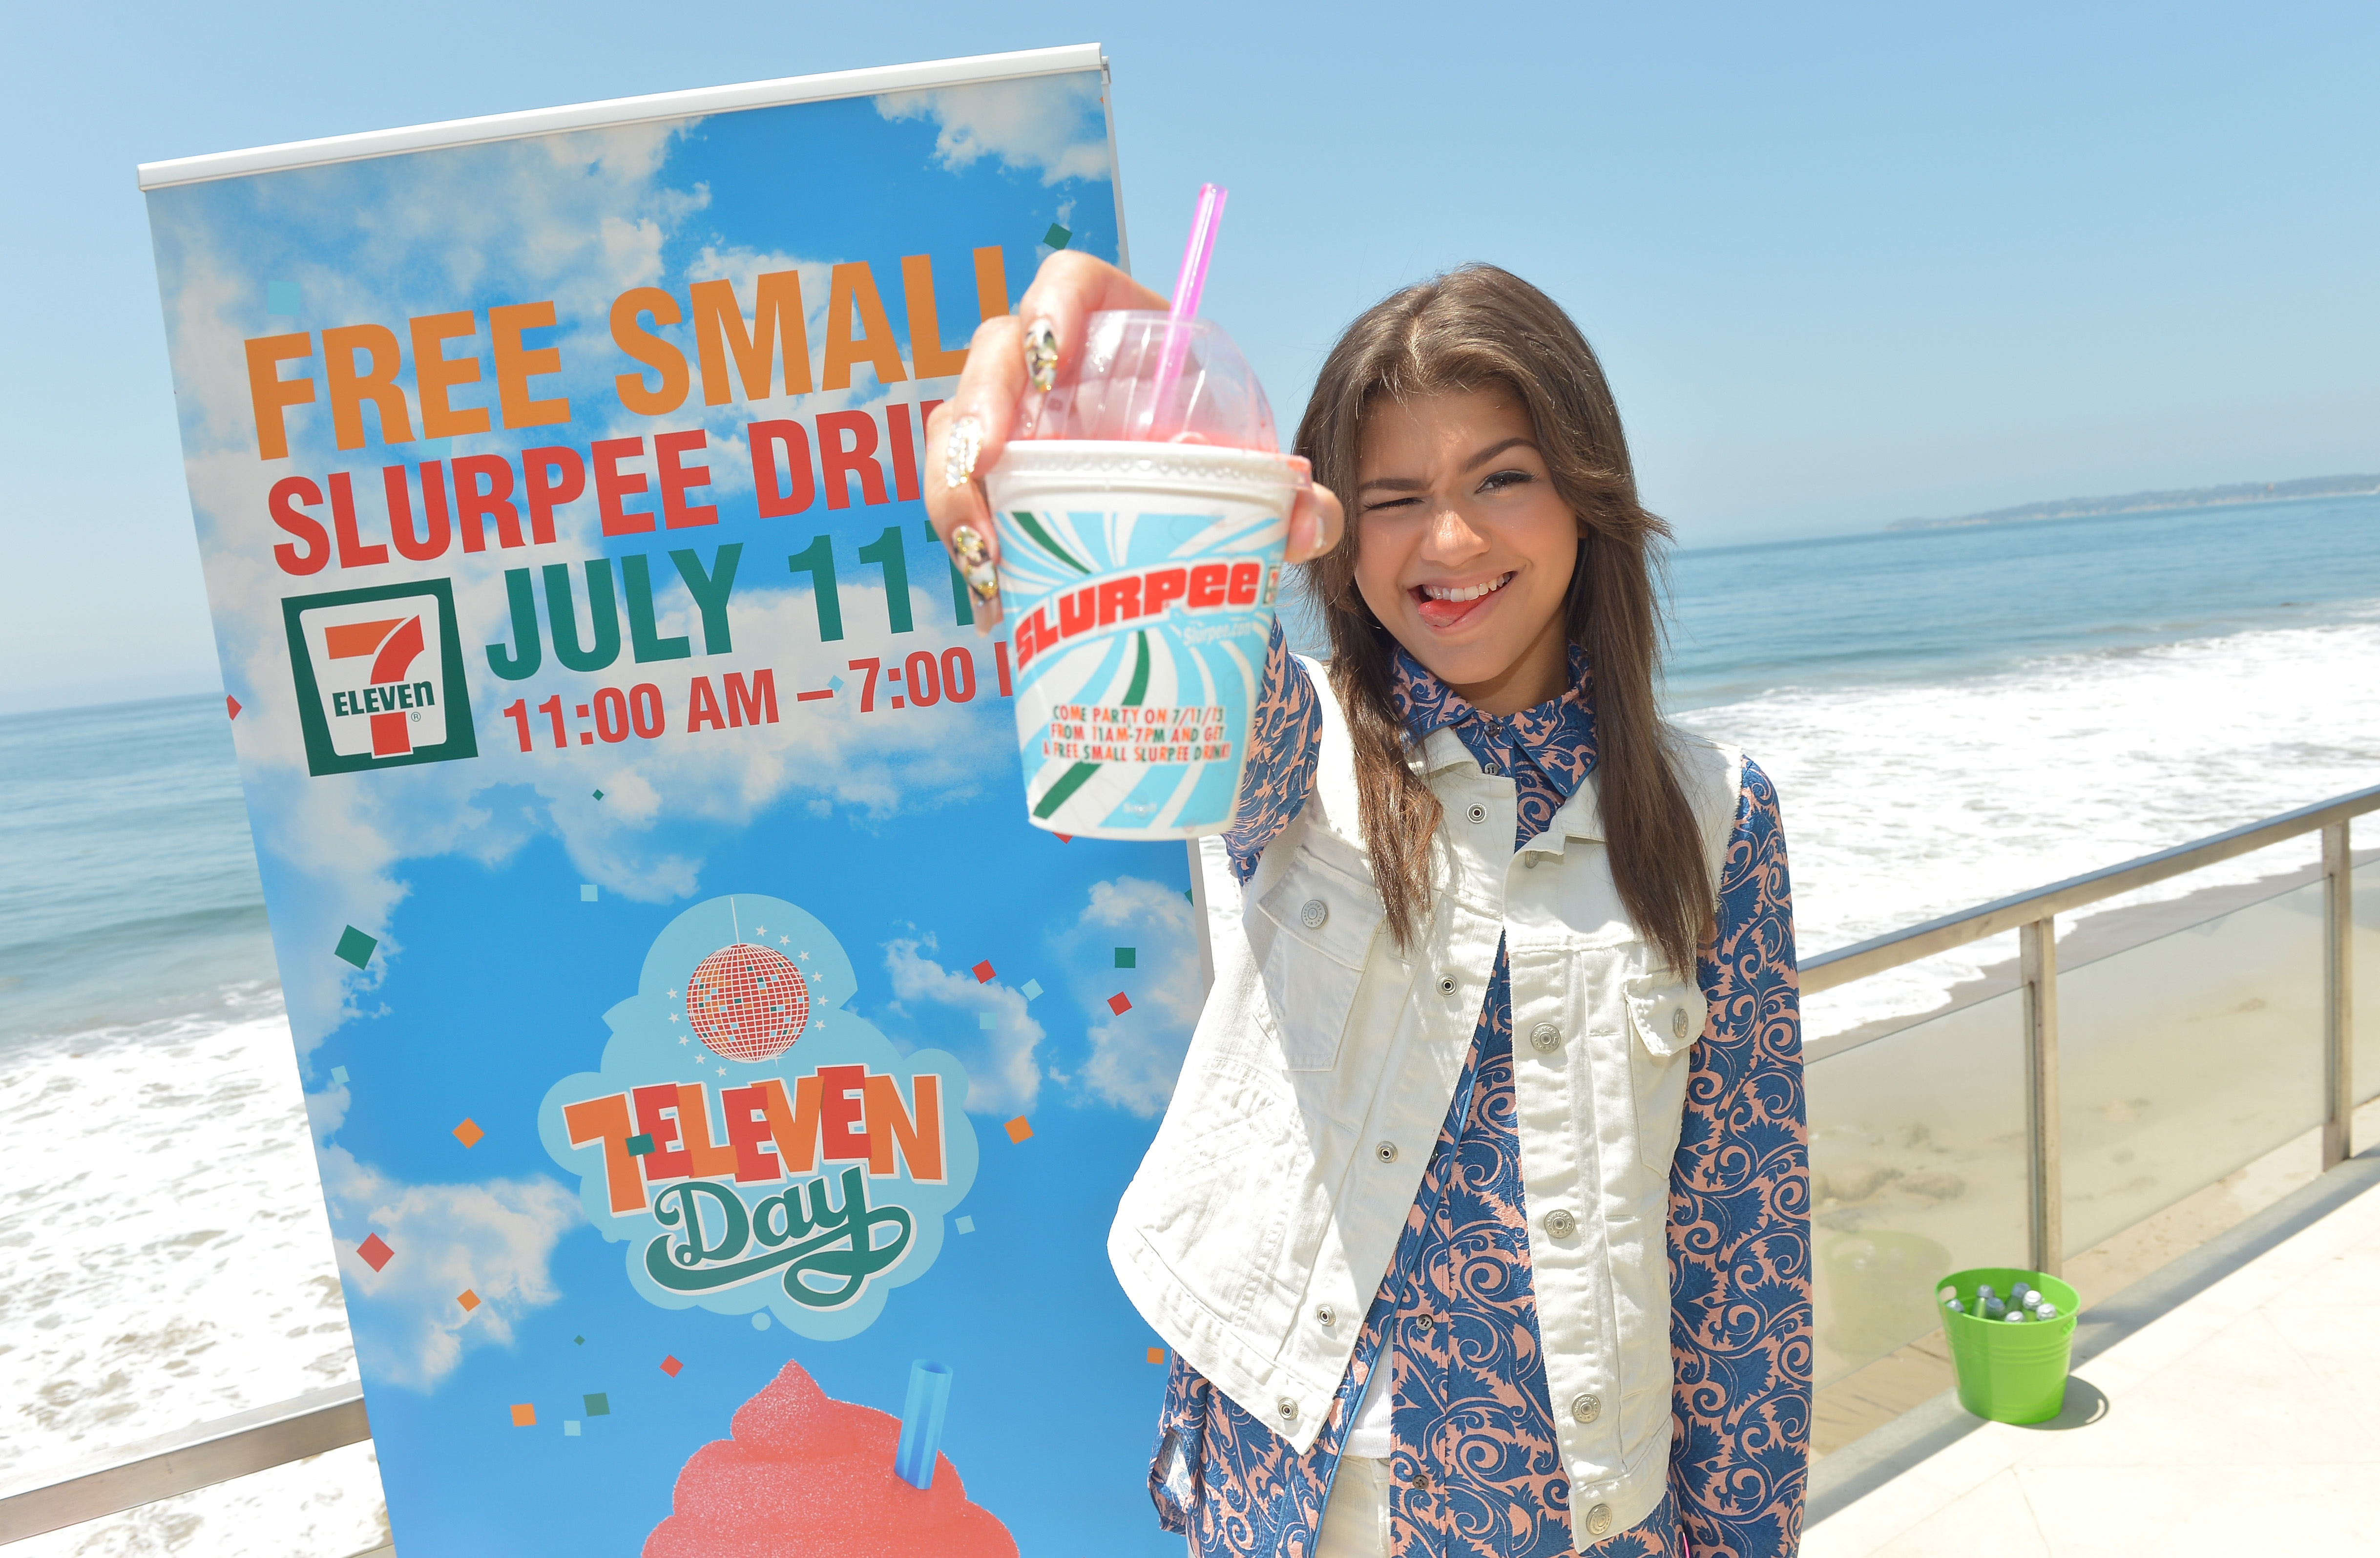 This Saturday, July 11, 7-Eleven will hold its annual Free Slurpee Day.